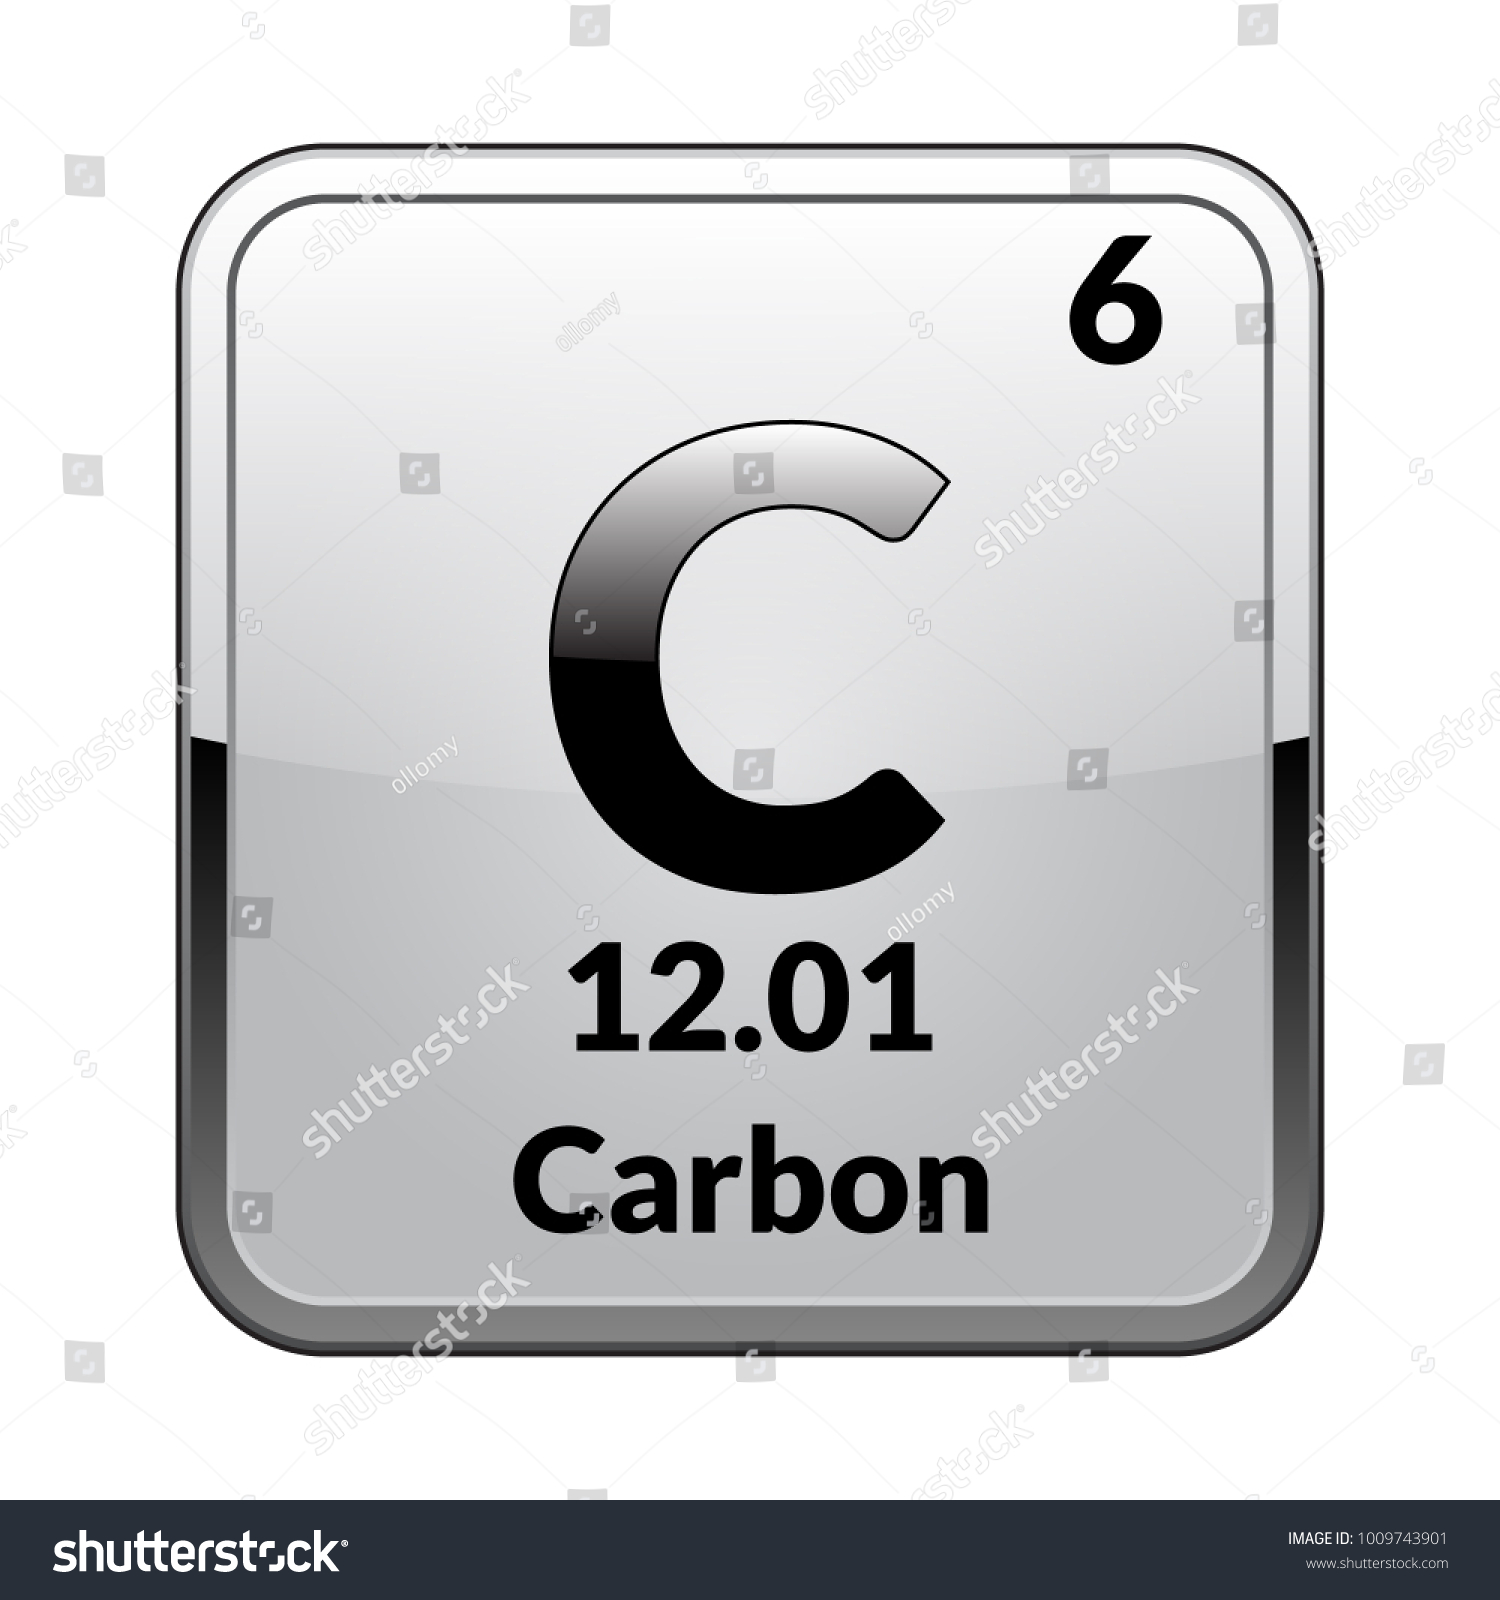 Carbon symbol periodic table choice image symbol and sign ideas carbon symbolchemical element periodic table on stock vector carbon symbolemical element of the periodic table on urtaz Image collections